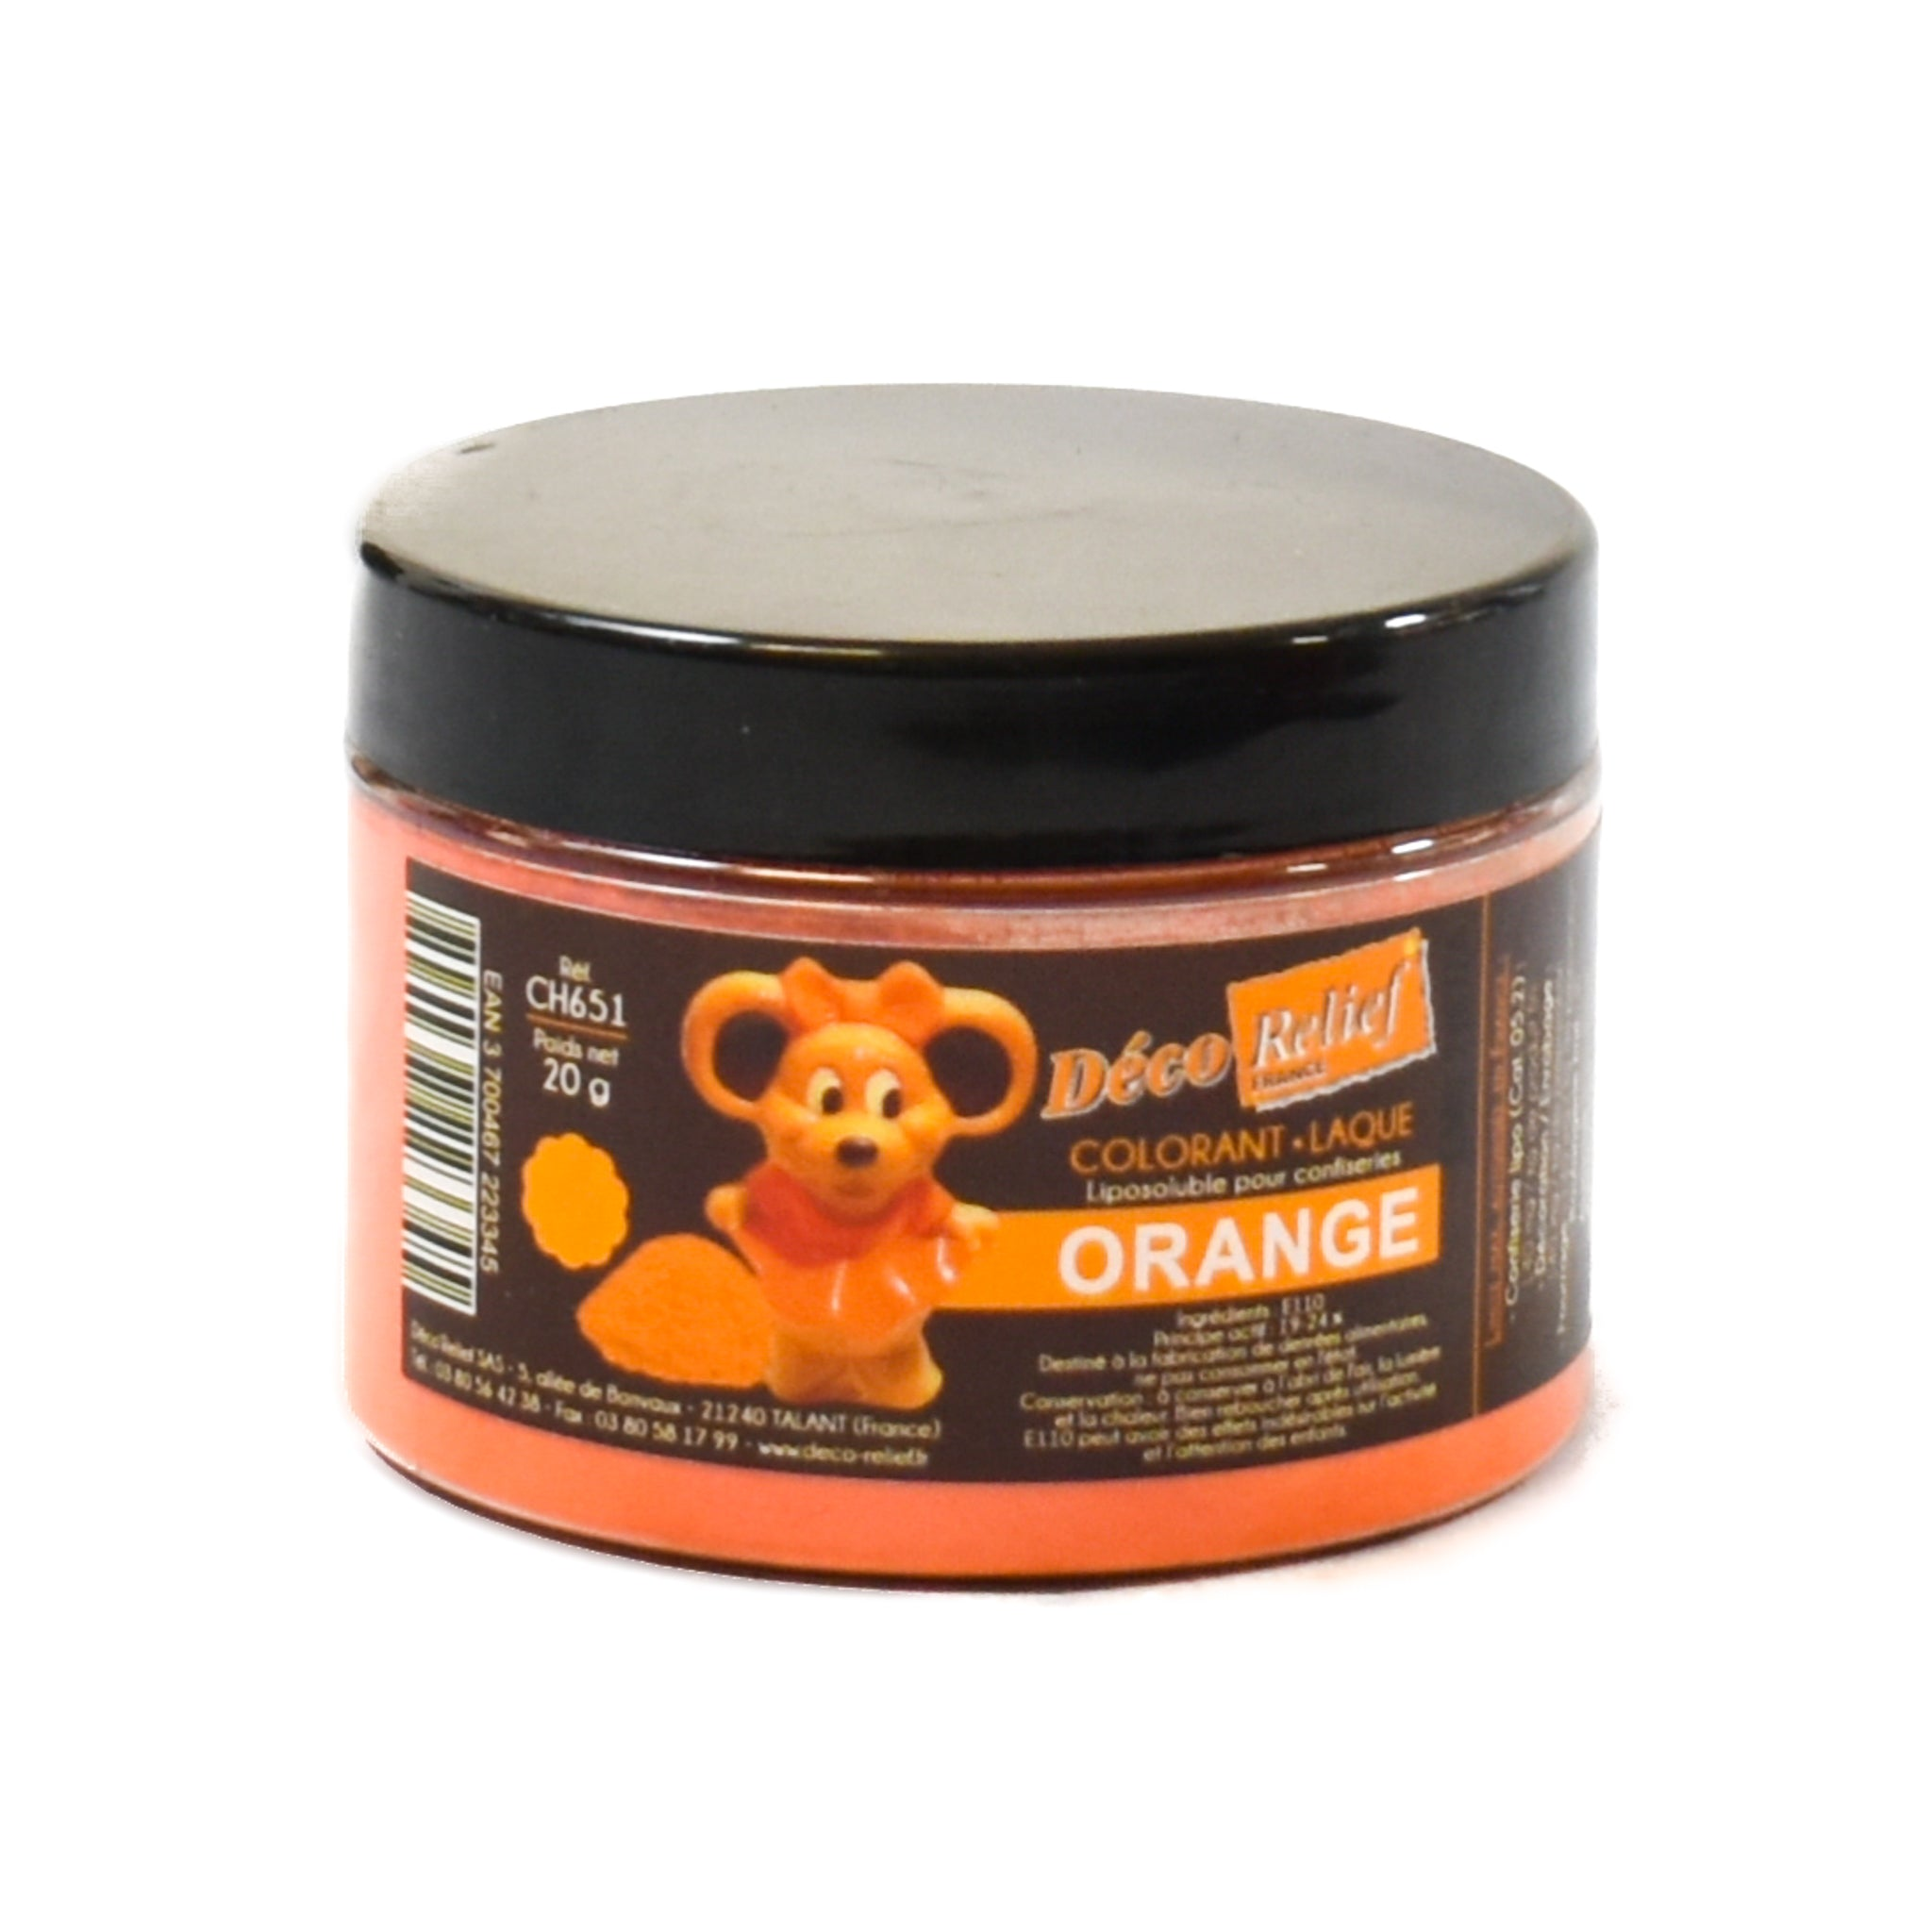 Orange Gloss Food Colour For Chocolate 20g